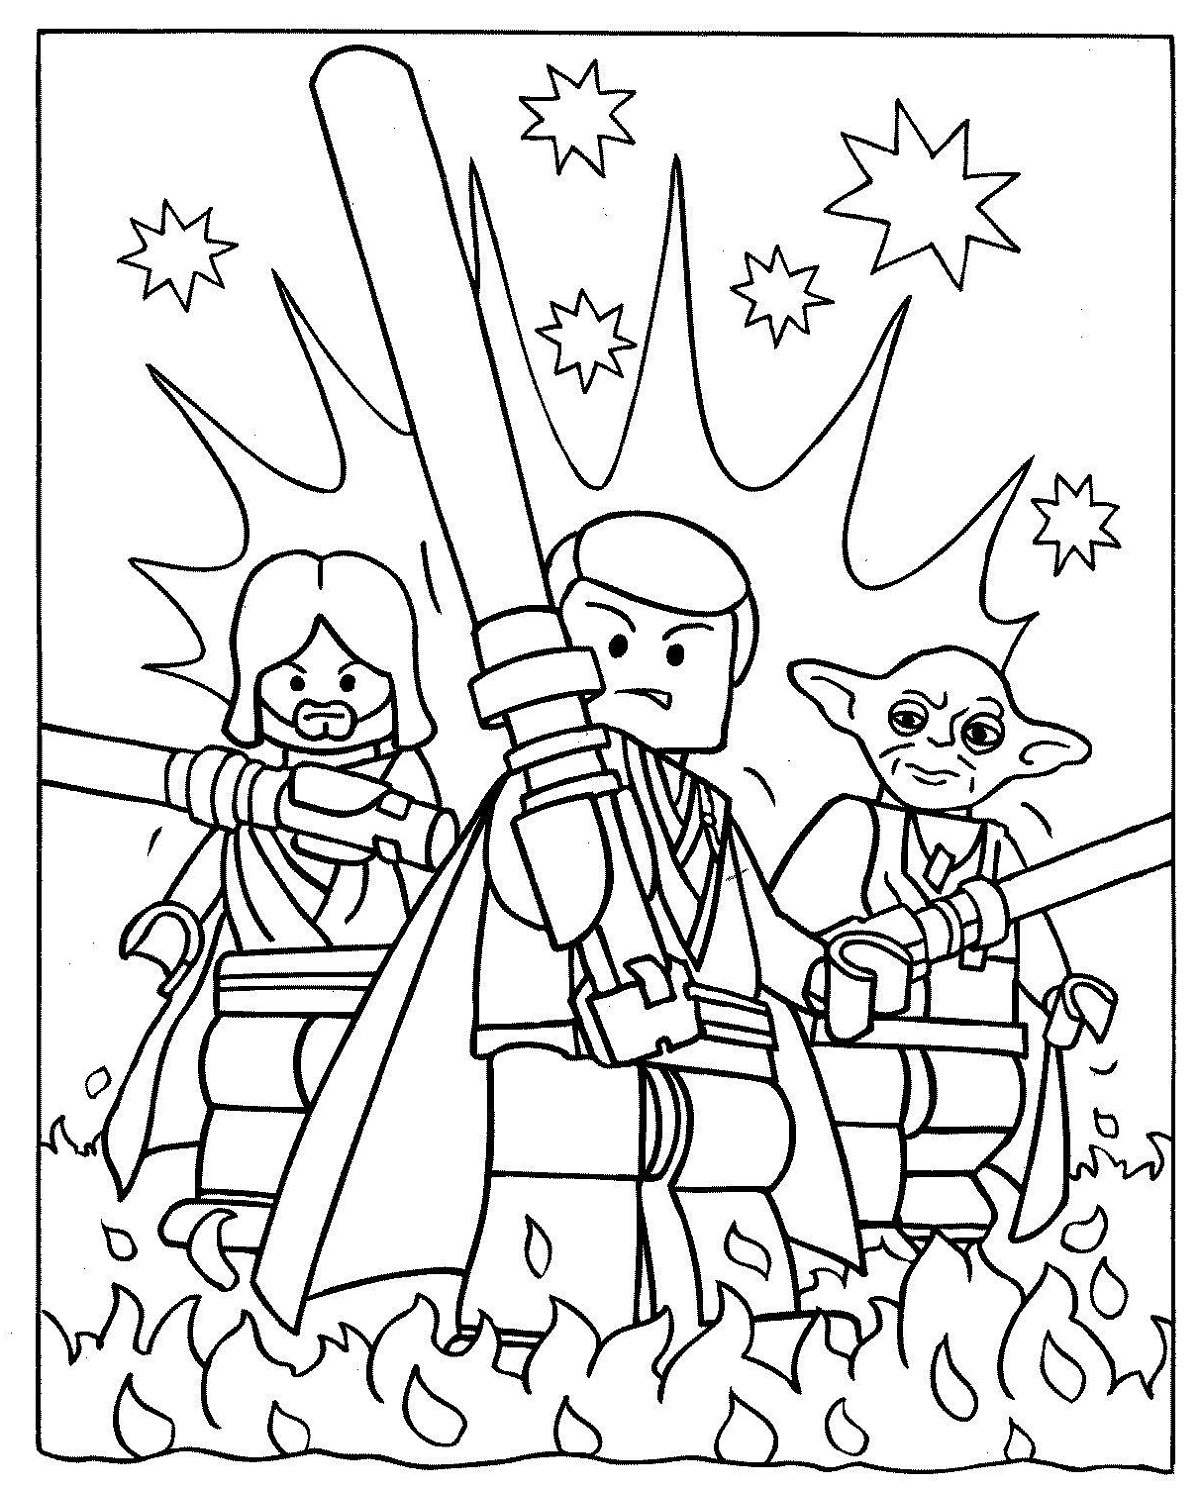 lego star wars pictures to color kids n funcom coloring page lego star wars lego star wars color lego wars pictures star to